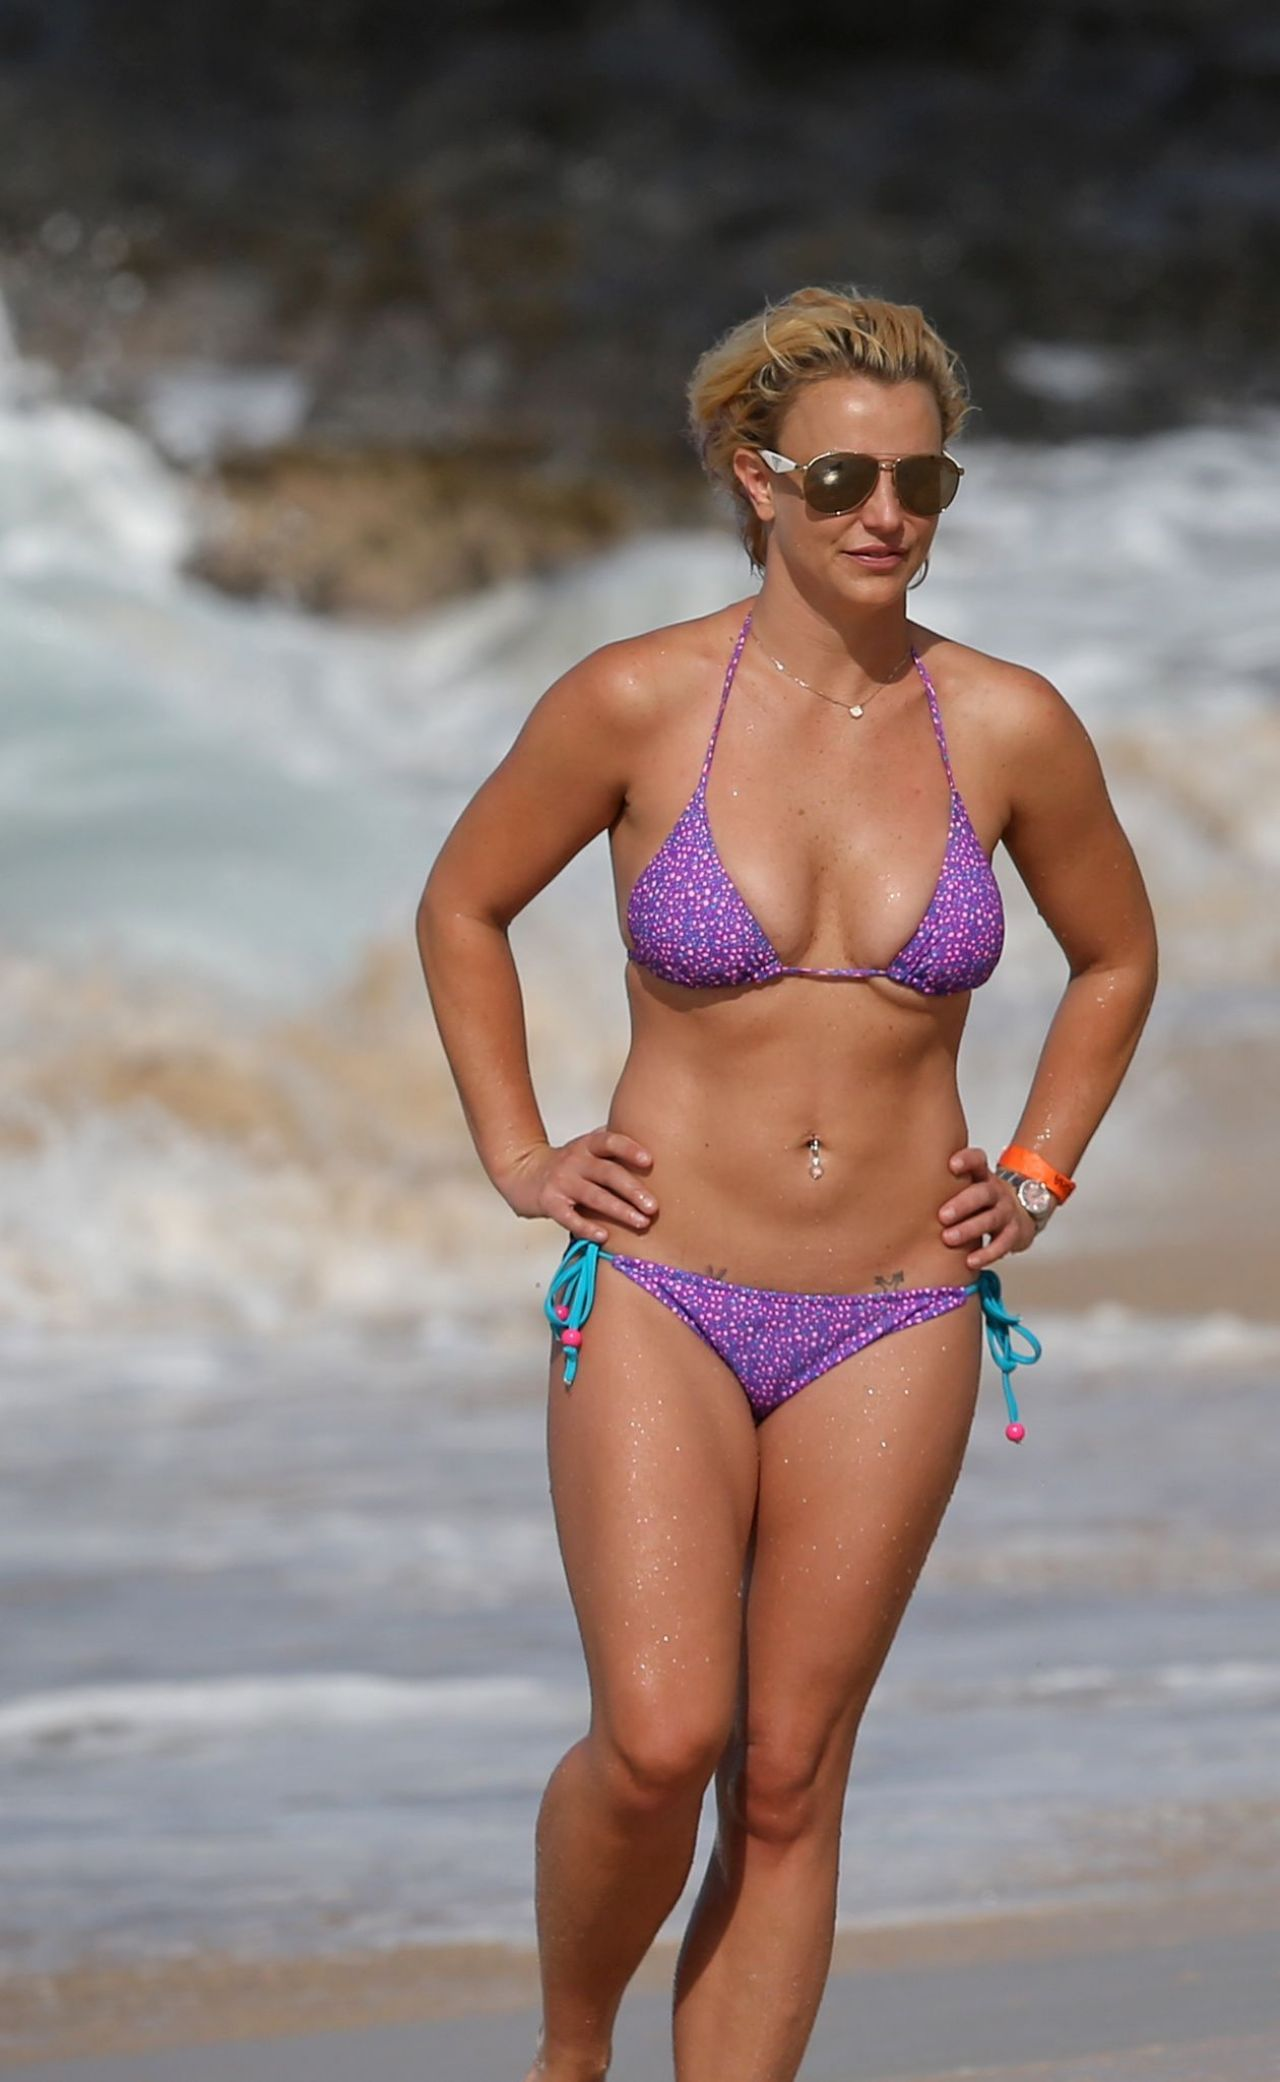 britney-spears-on-a-beach-in-a-bikini-in-hawaii-july-2015_14